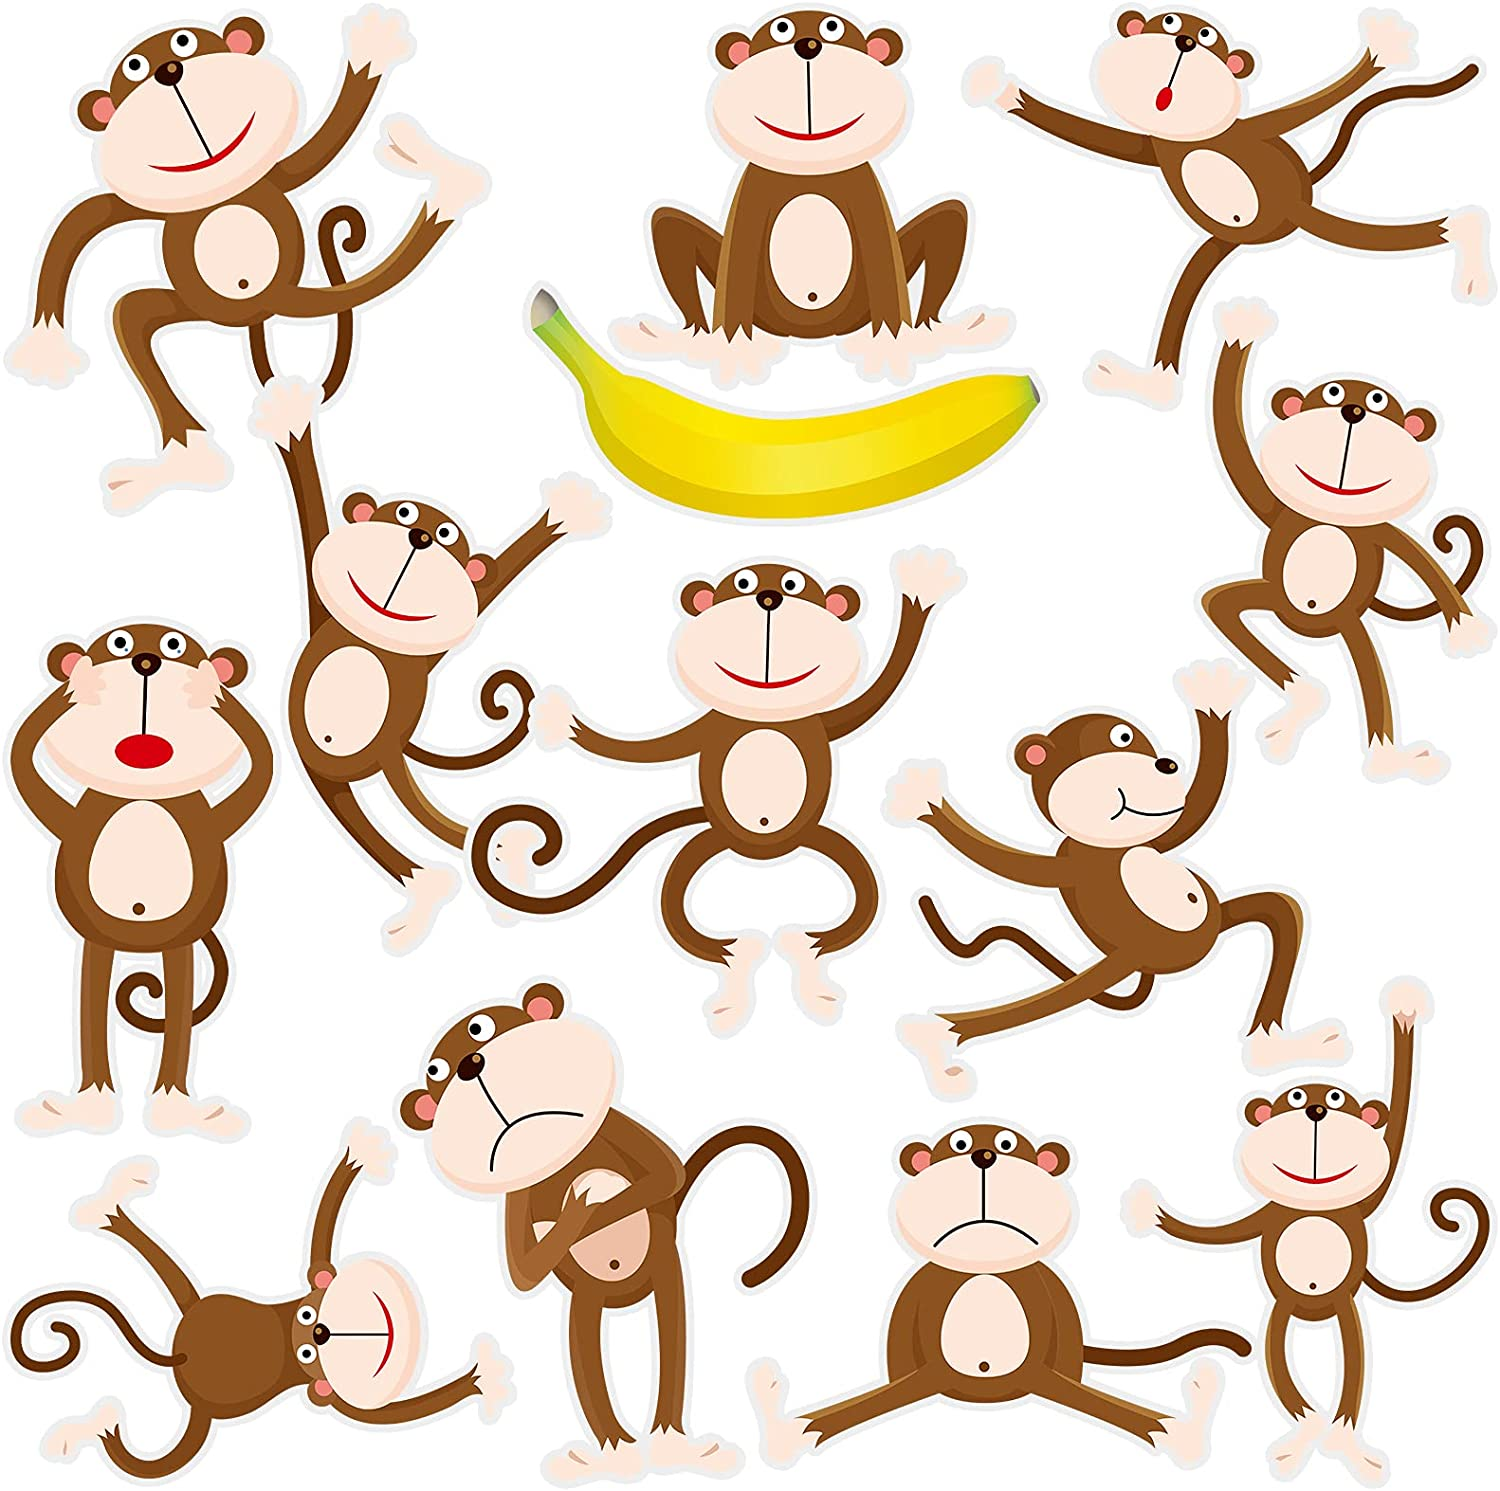 48 Pieces Monkeys Cut-Outs Banana Cutouts Jungle Animals Cutouts with 5 Sheet Glue Point Dot for Jungle Theme Party Games Calendars Bulletin Boards Classrooms Learning Spaces Decor